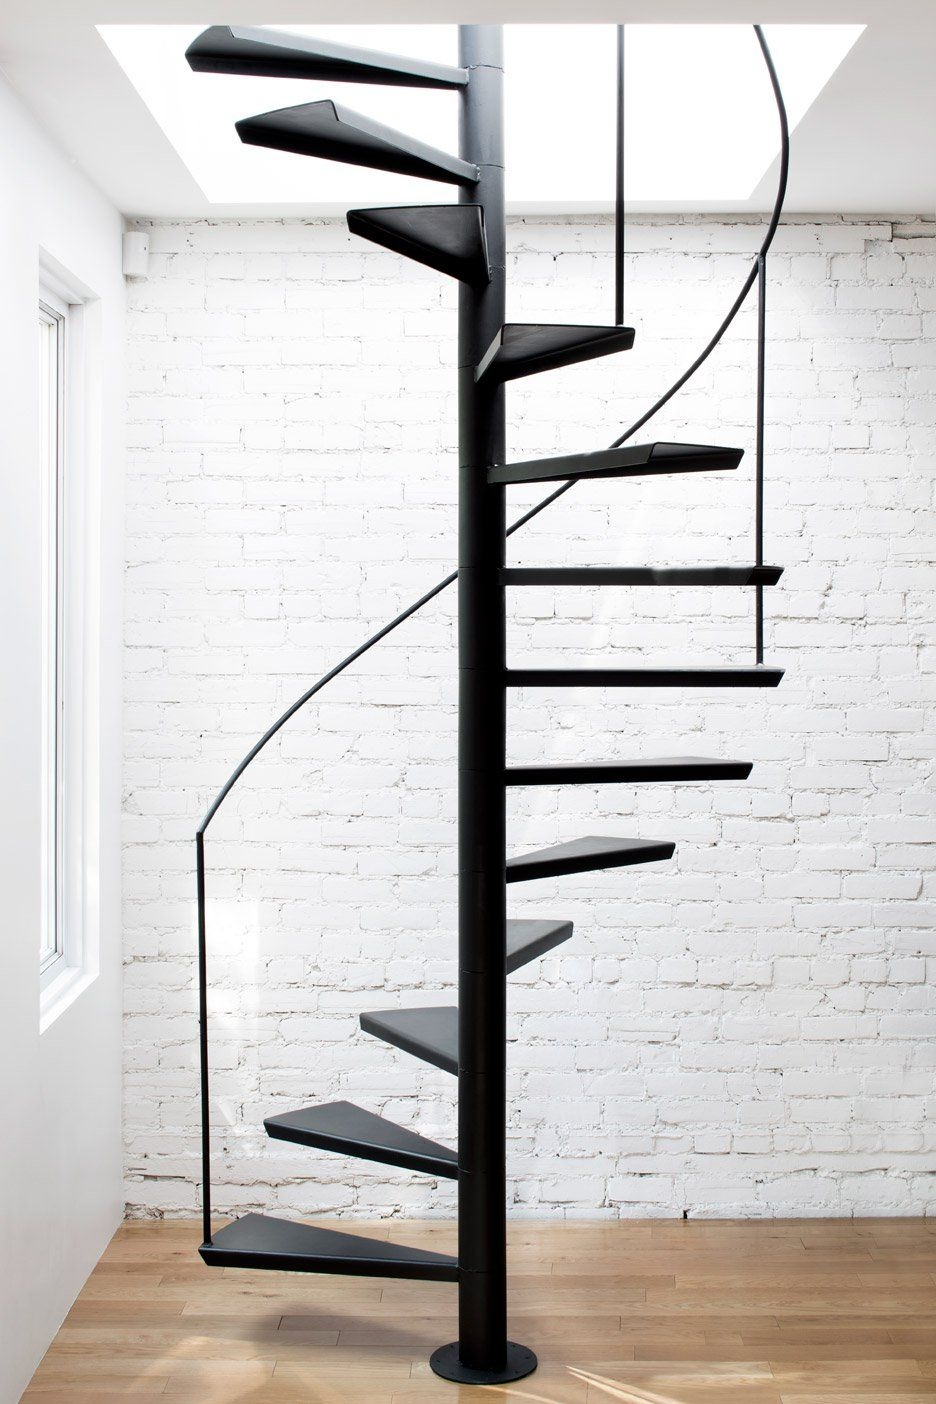 The 13 Types Of Staircases That You Need To Know   Used Spiral Staircase For Sale Near Me   Staircase Kits   Demose Hardware   Wrought Iron   Railing   Stainless Steel